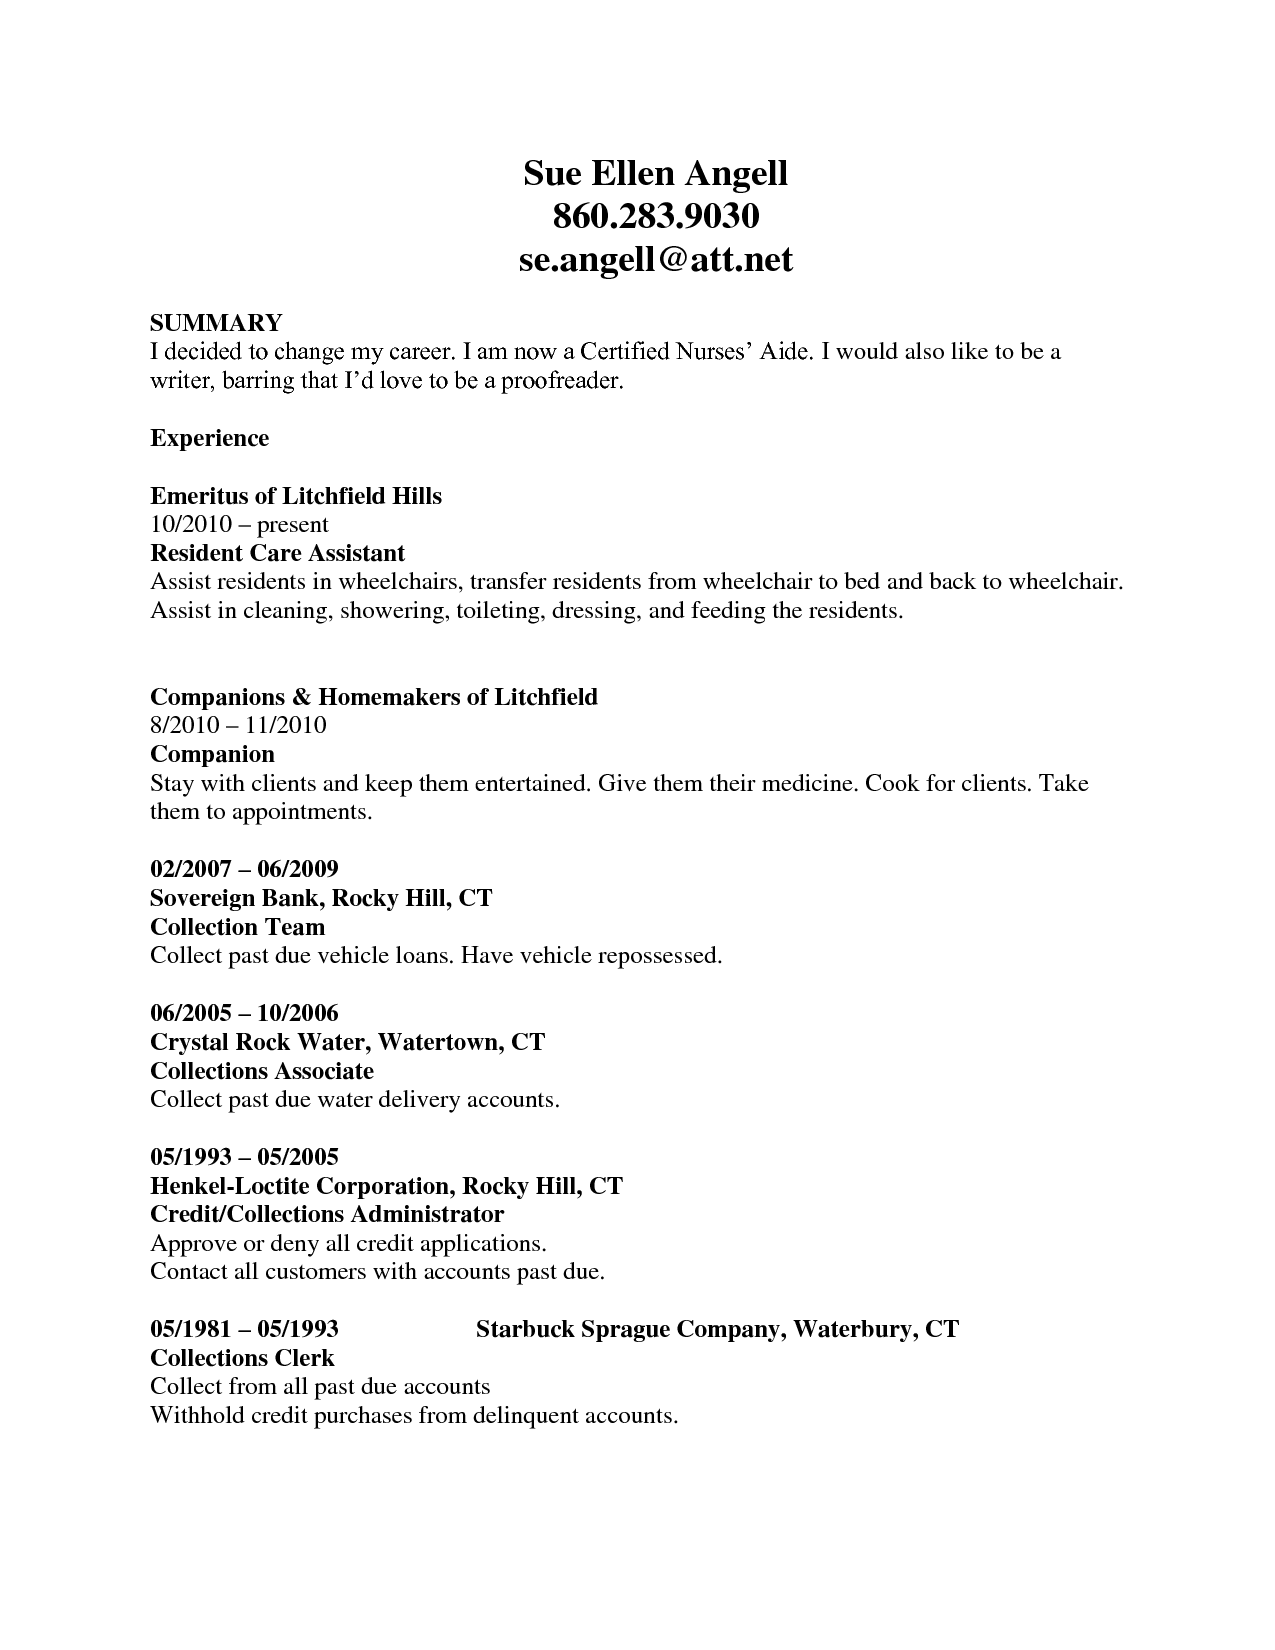 cna resume example click to zoom - Cna Resume Objective Examples